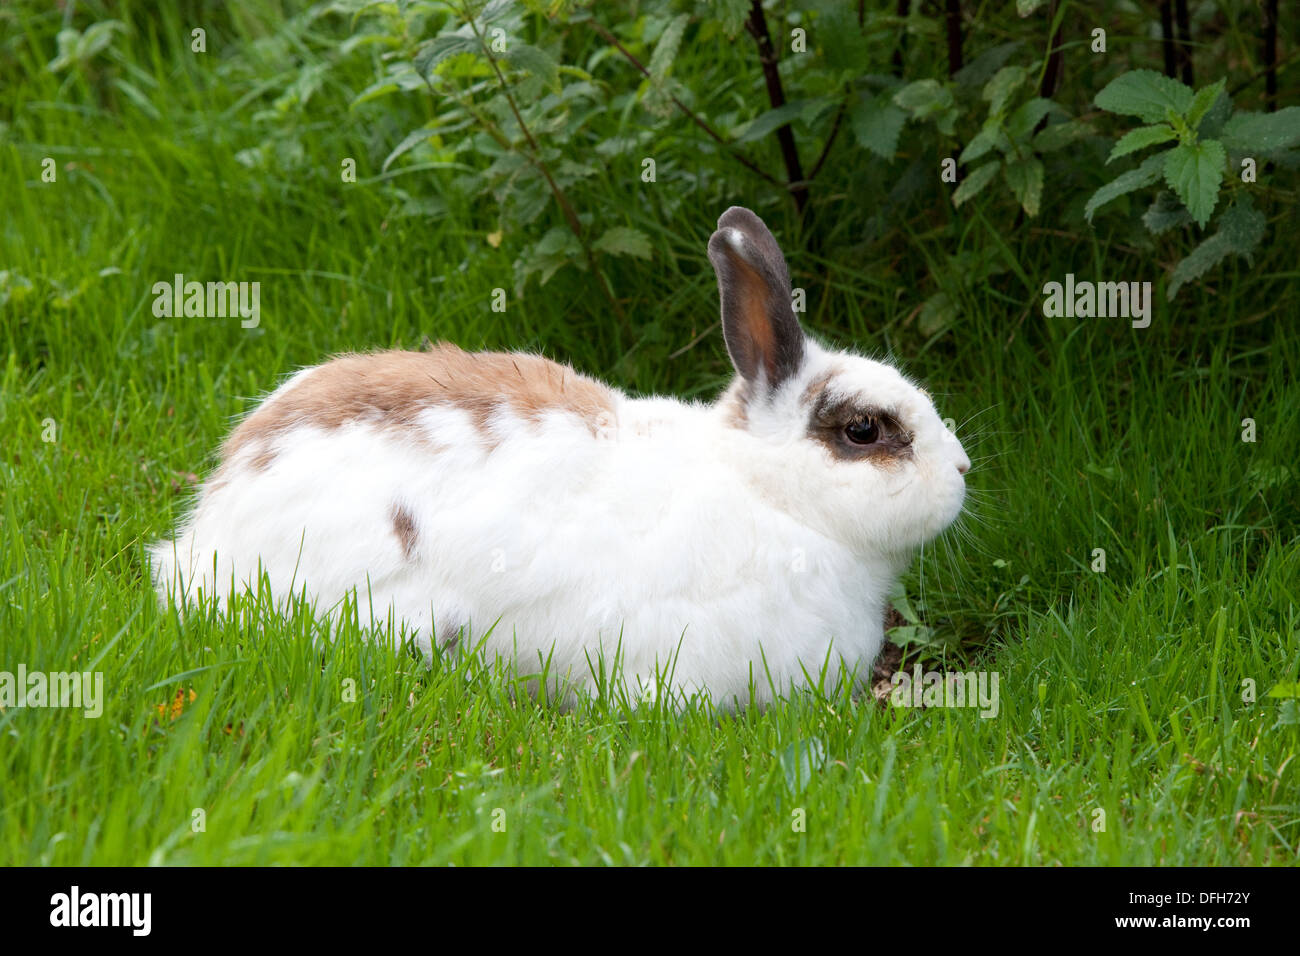 A pet rabbit enjoys the long grass and freedom of a Devon, UK, garden. - Stock Image